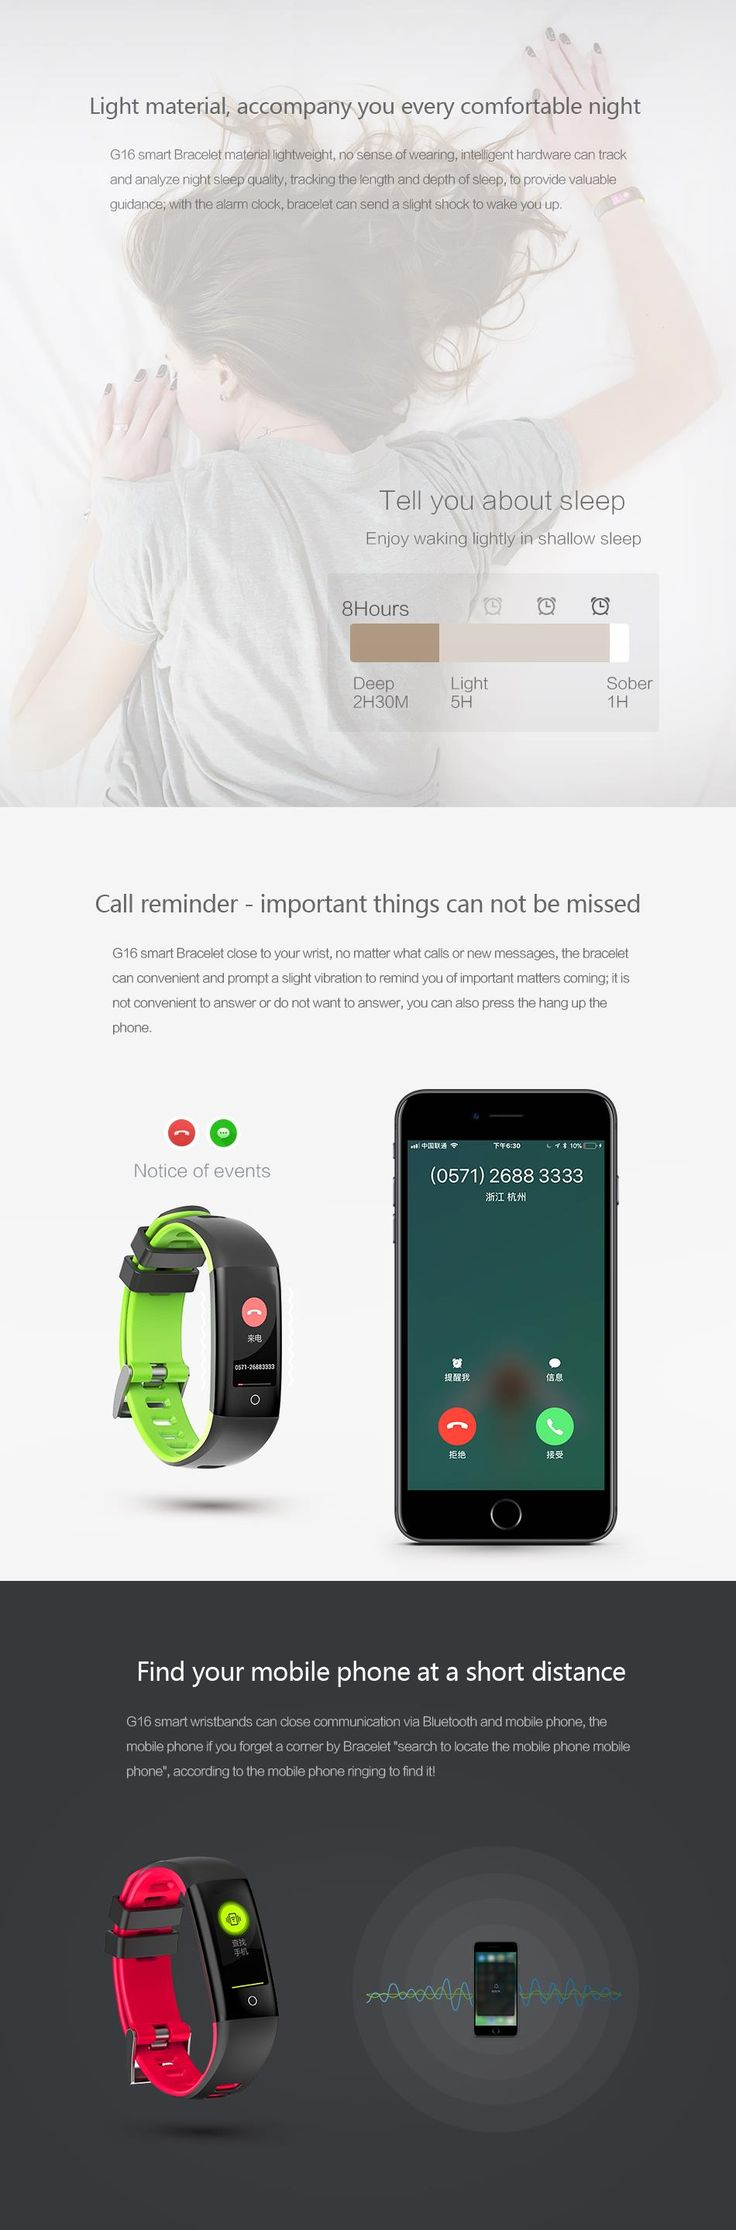 Bakeey G16 0.96 inch Color Screen Blood Pressure Heart Rate Monitor Smart Watch for iOS Android Sale - Banggood.com  Iphone smartphones mobile cellphones apple accessories smartwatch Wristband